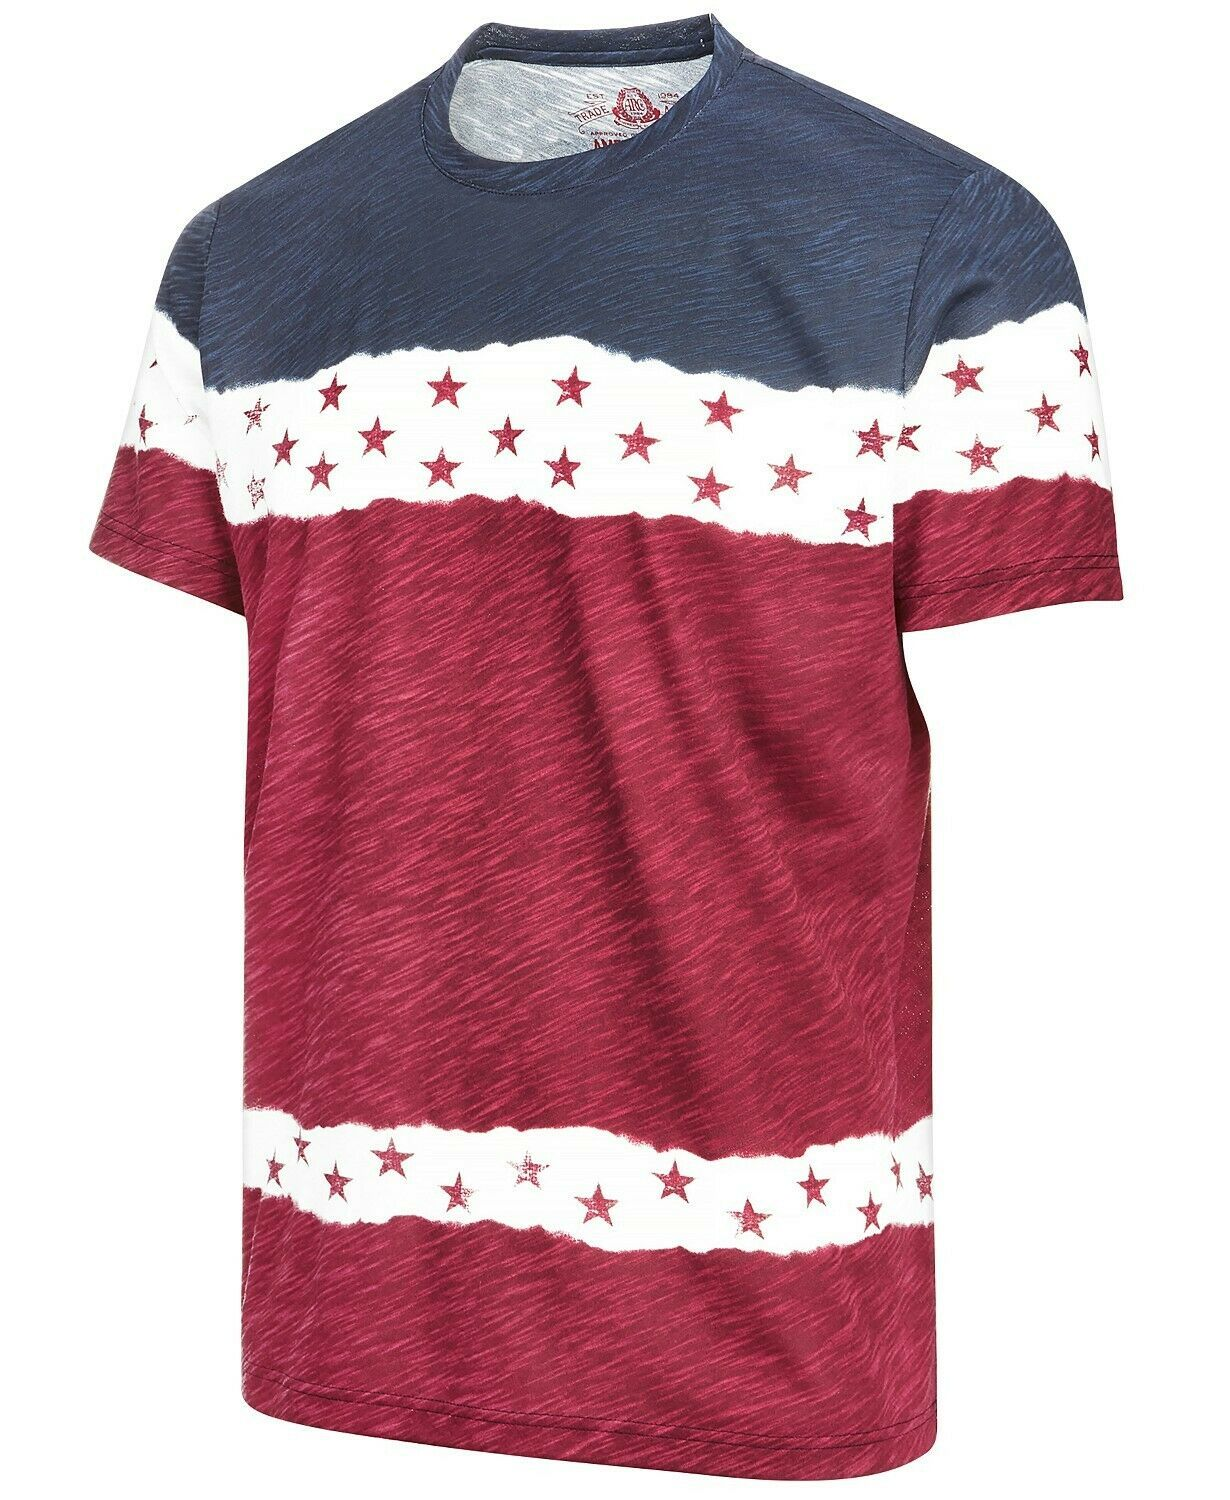 American Rag Men's Americana Colorblocked T-Shirt, Size S